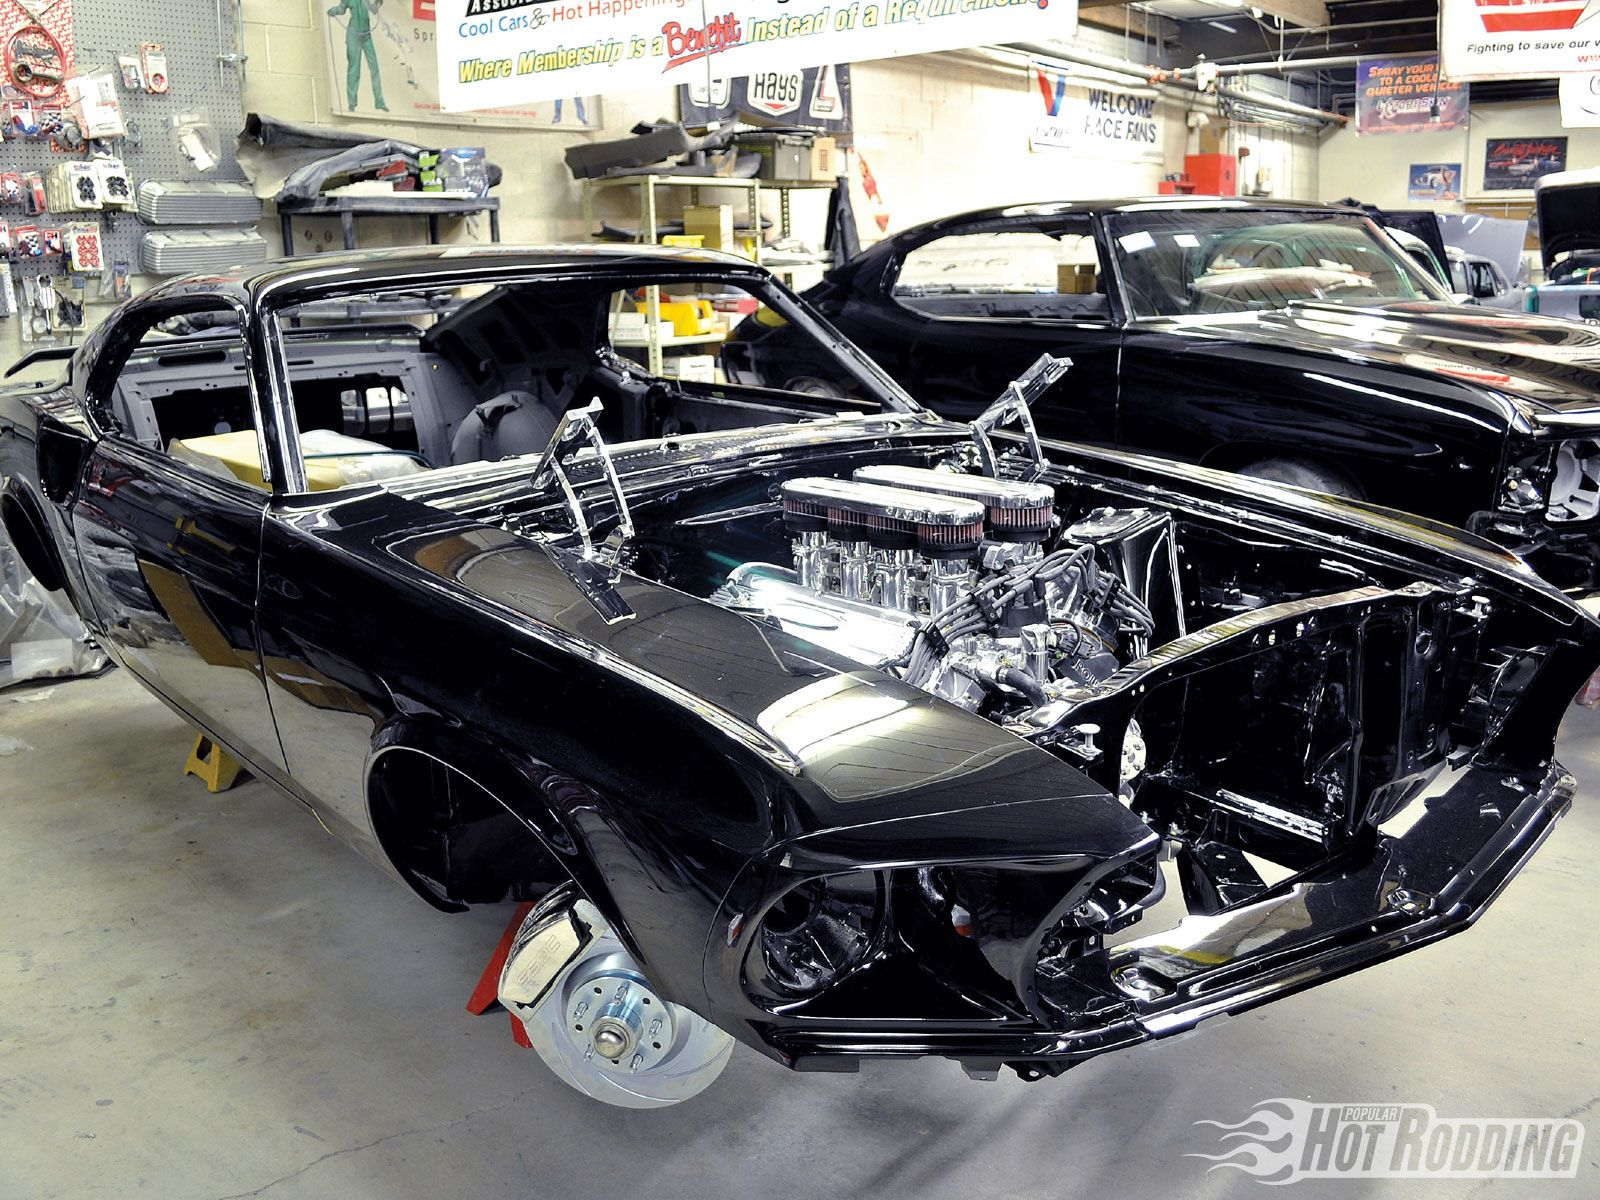 1105phr 01 o 1969 mustang fastback 1600—1200